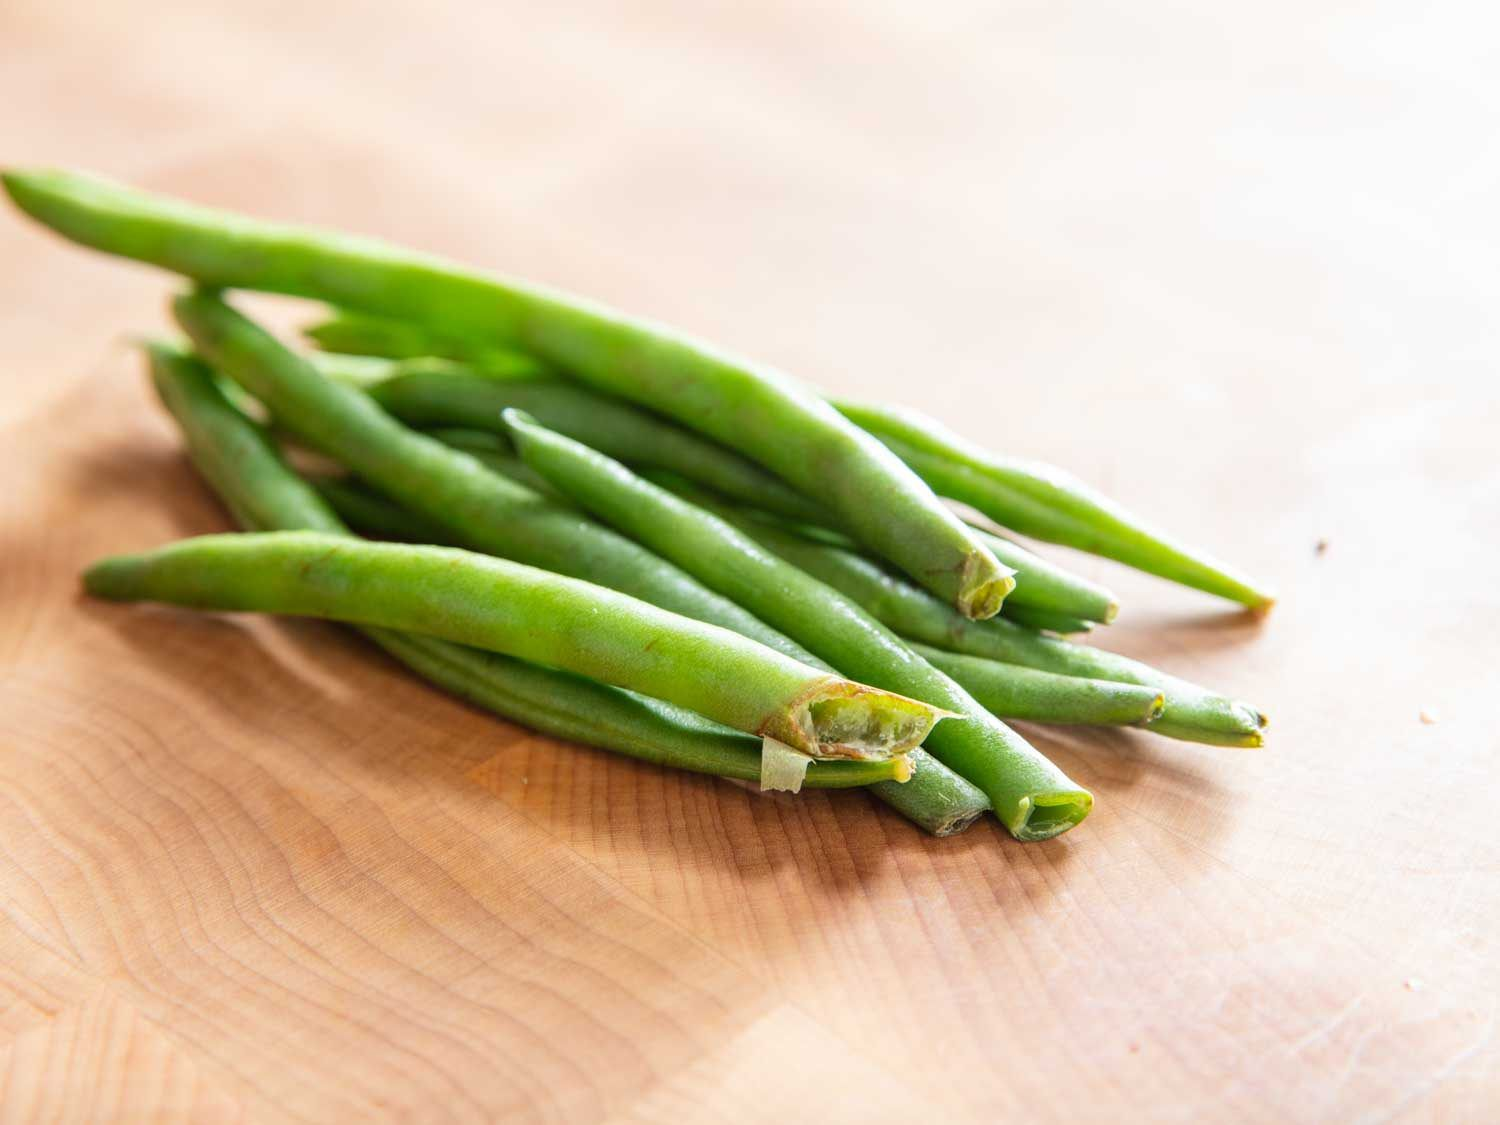 Green beans with damaged stem ends.